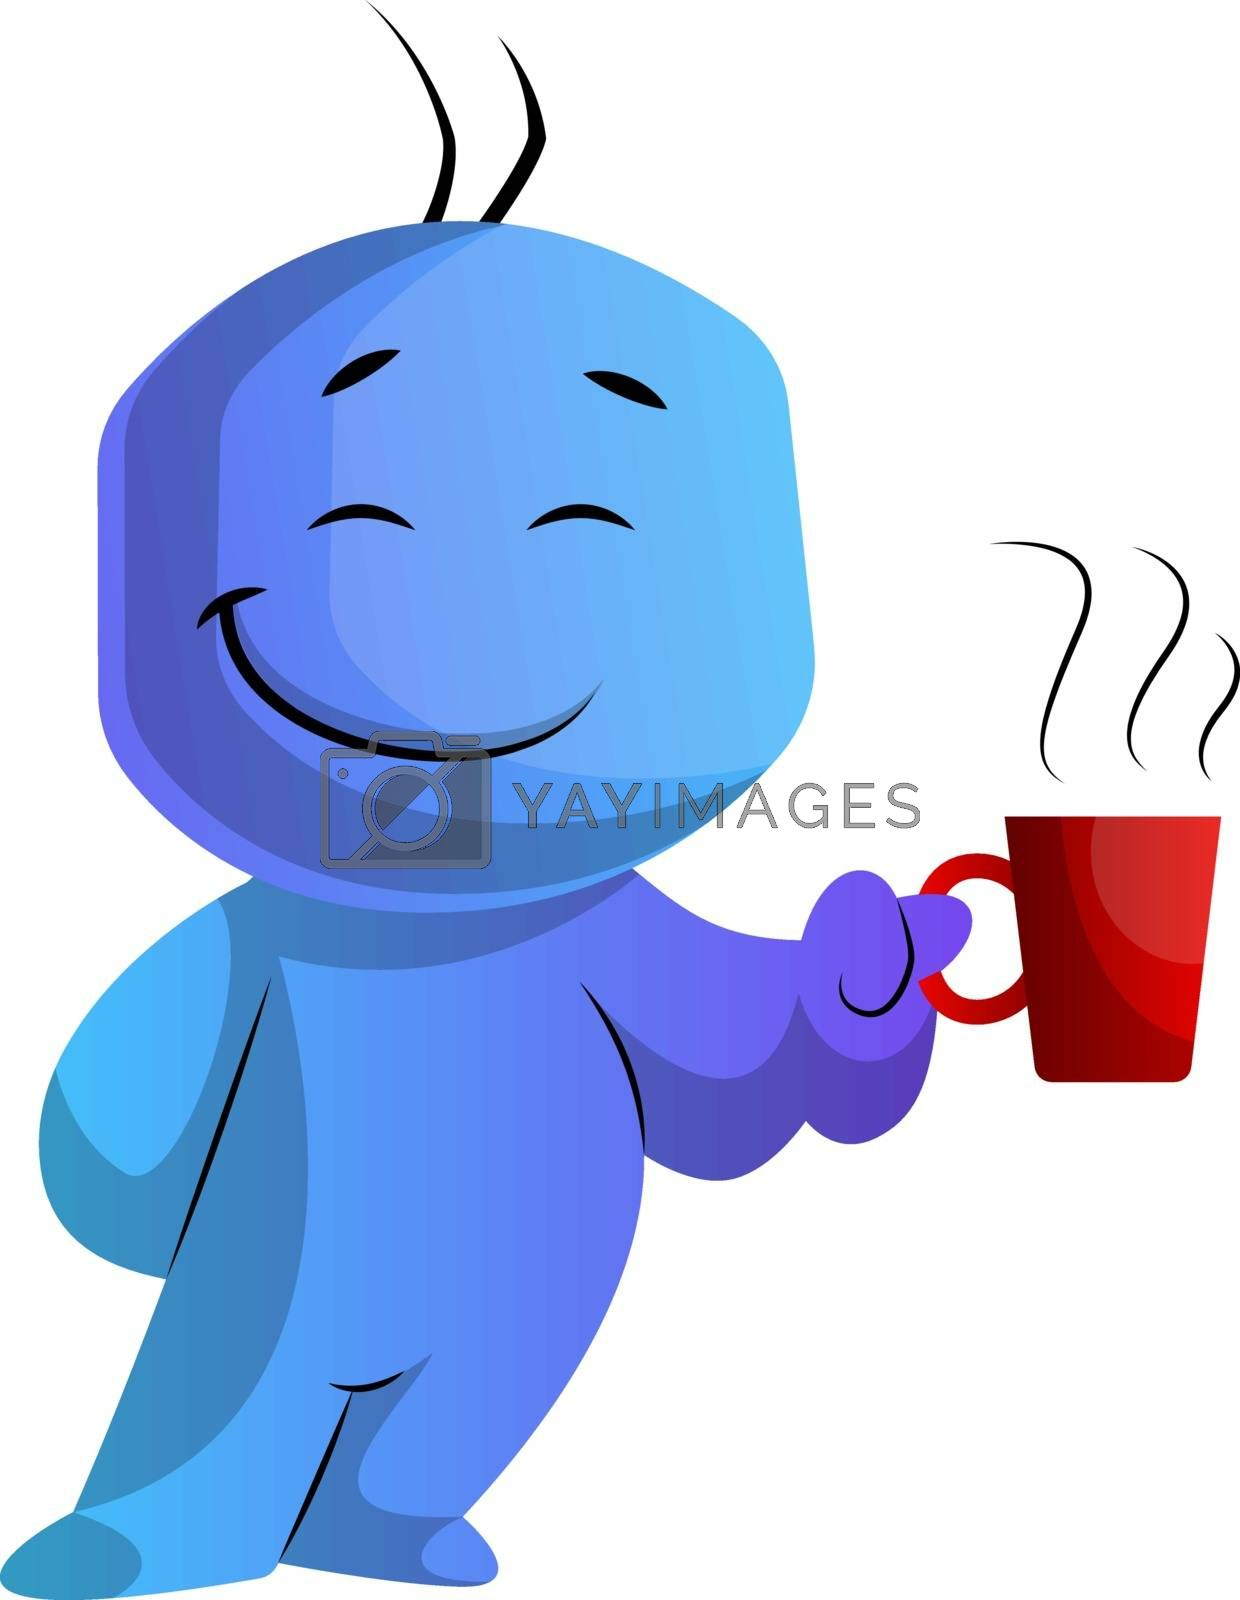 Royalty free image of Blue cartoon caracter with a cup illustration vector on white ba by Morphart